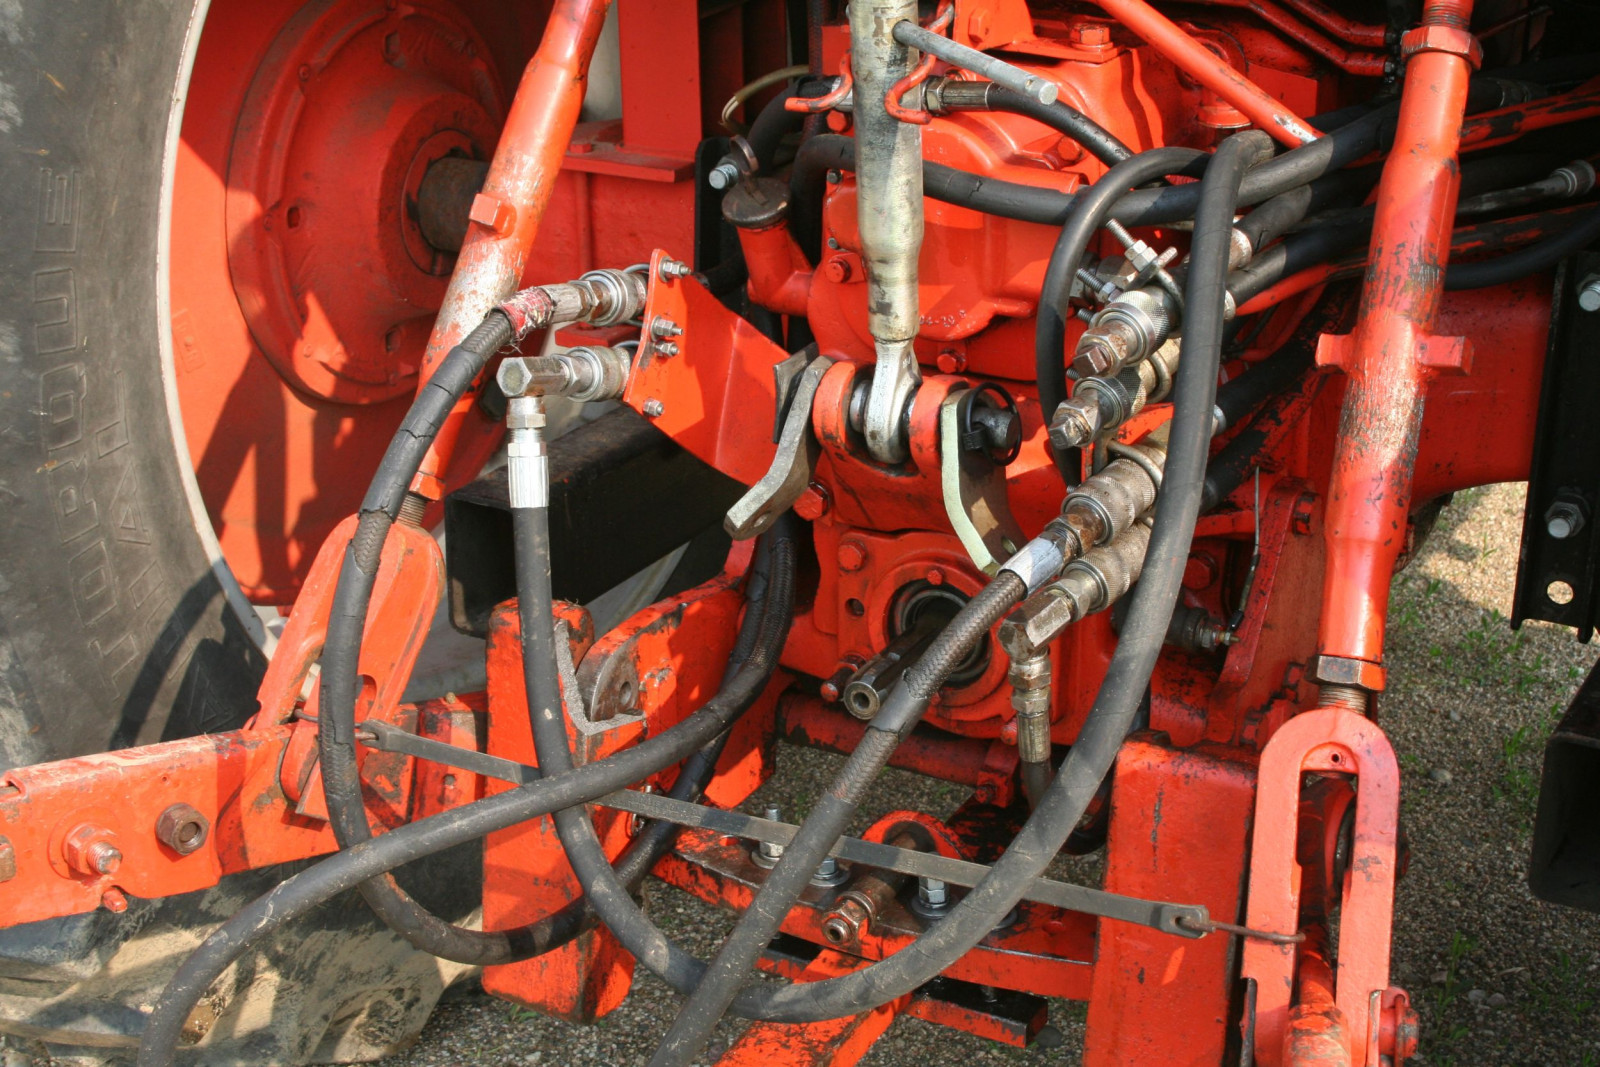 1978 Case 970 Tractor - Image 16